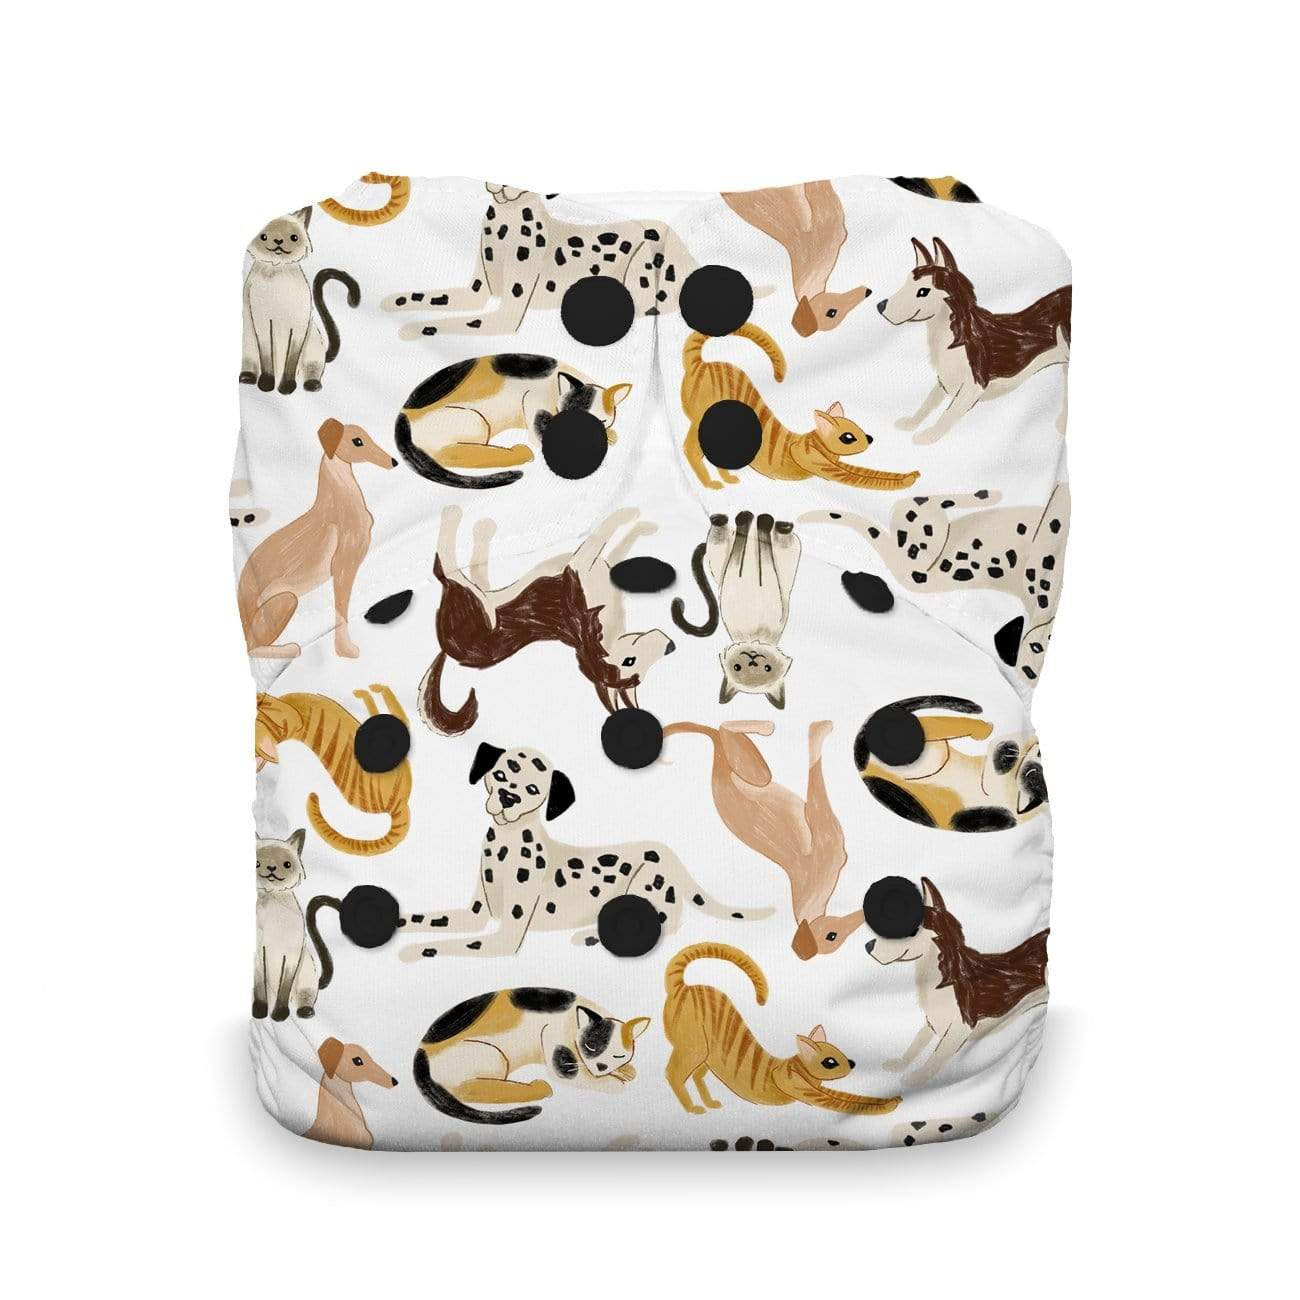 Thirsties One Size Snap All In One Diaper - Pawsitive Pals